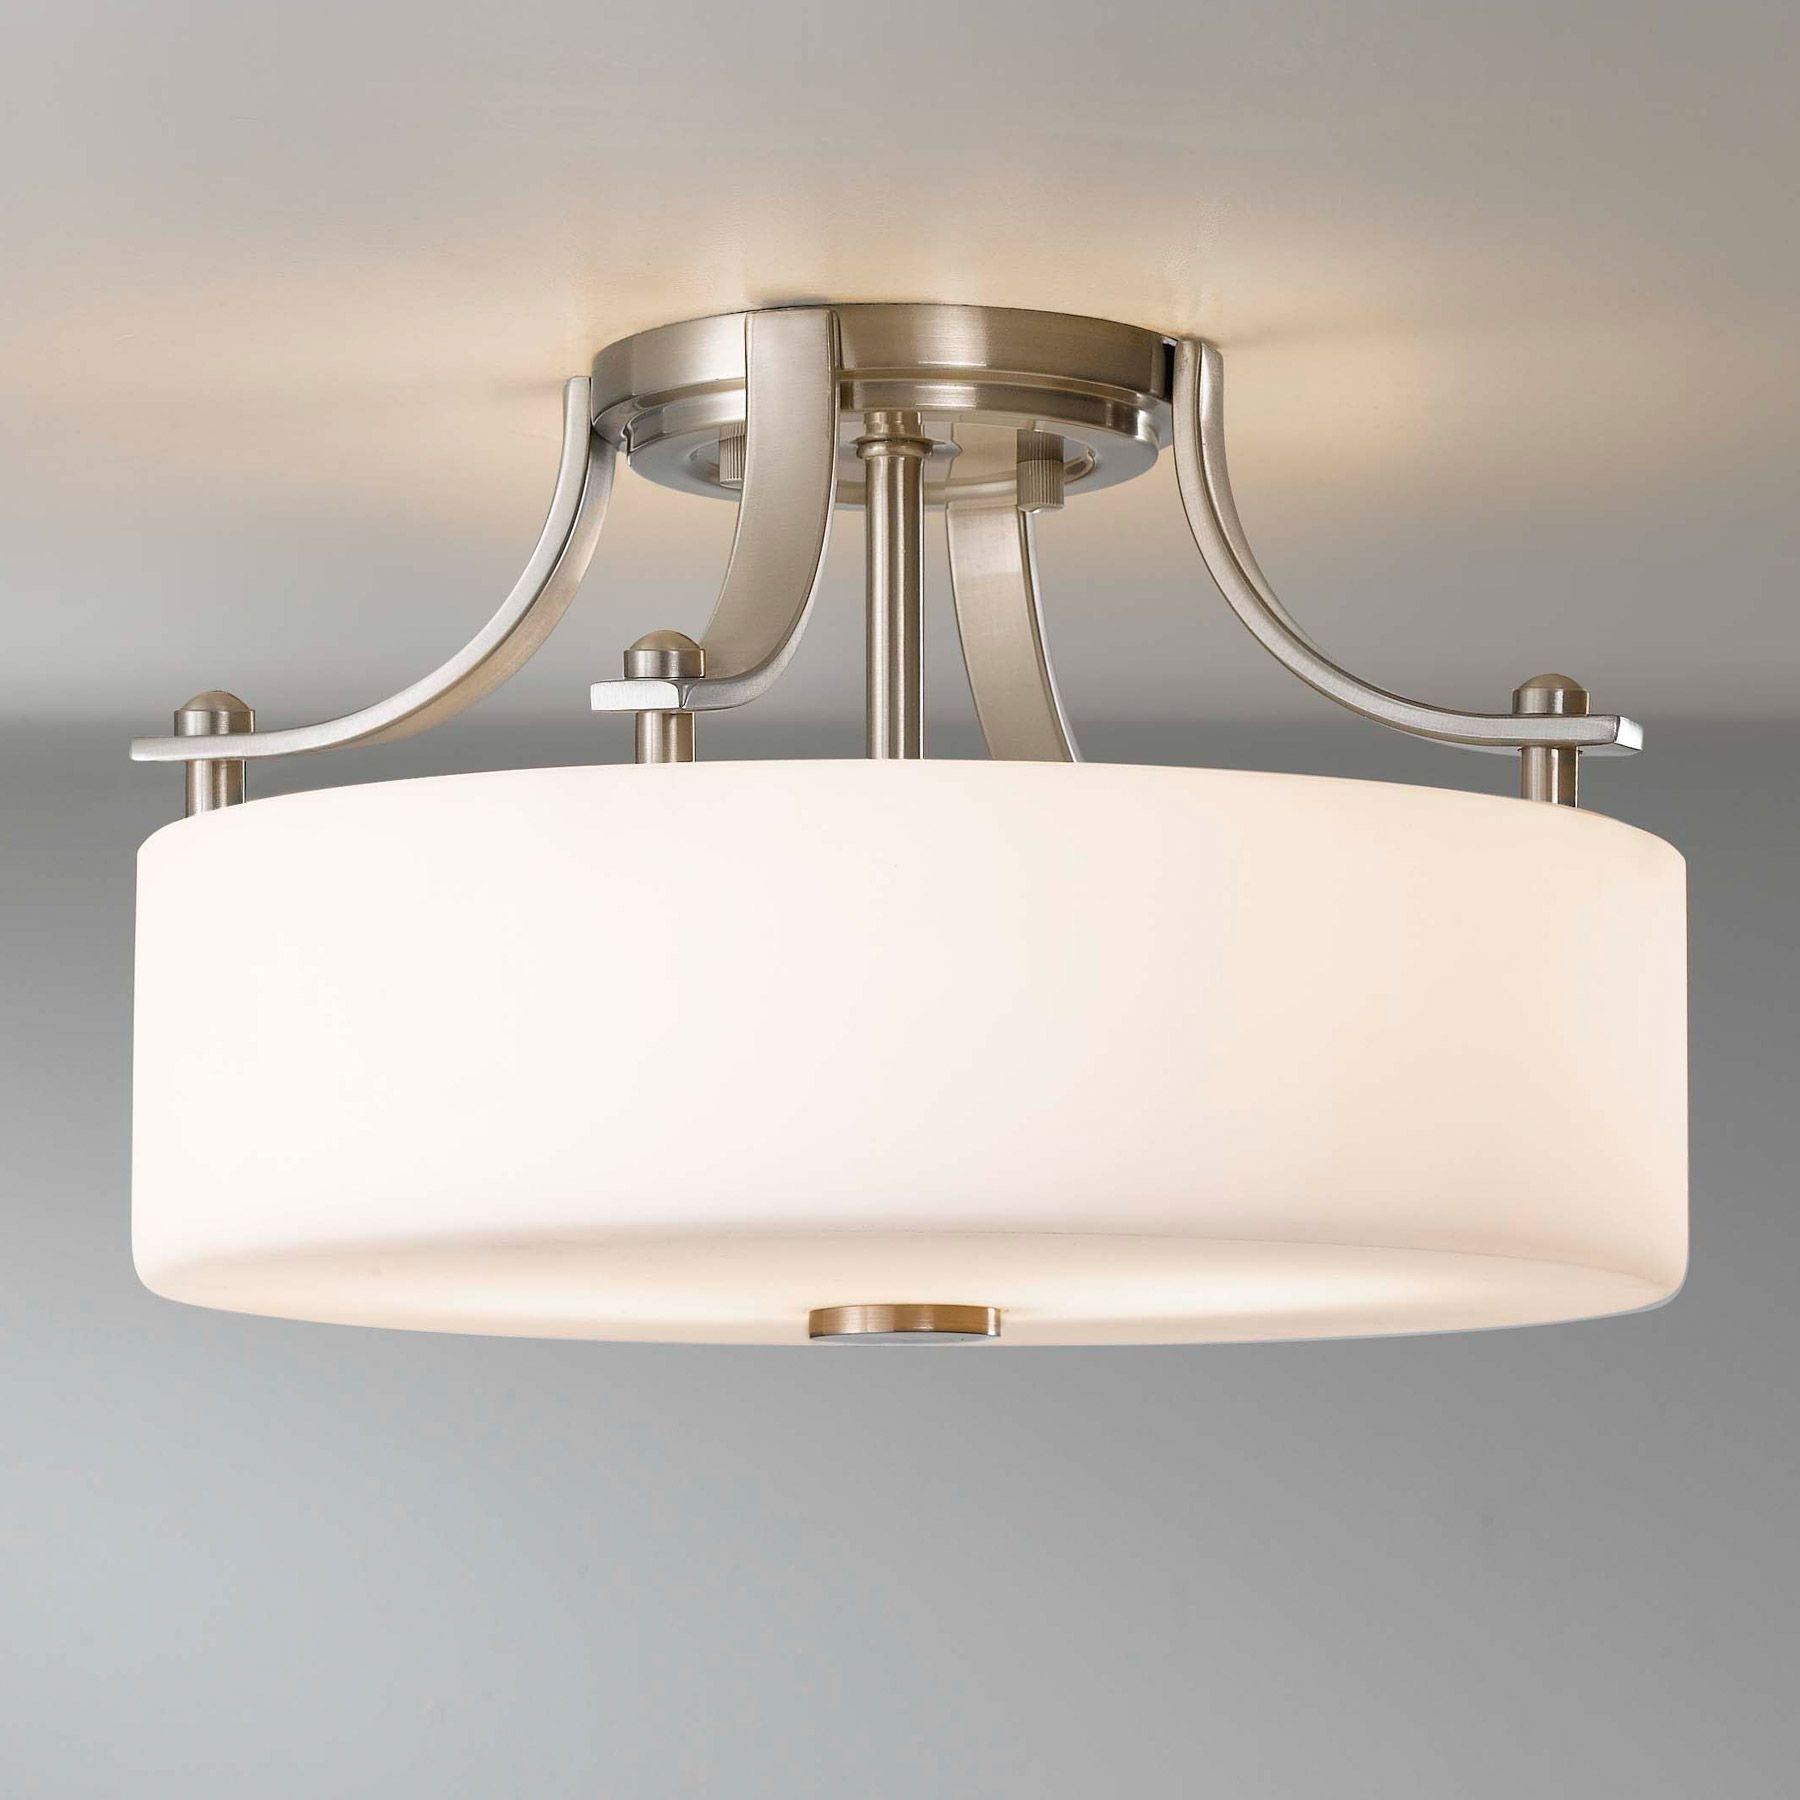 Flush Mount Kitchen Ceiling Lights White Flushmount Light Fixture Flush Mount Ceiling Light